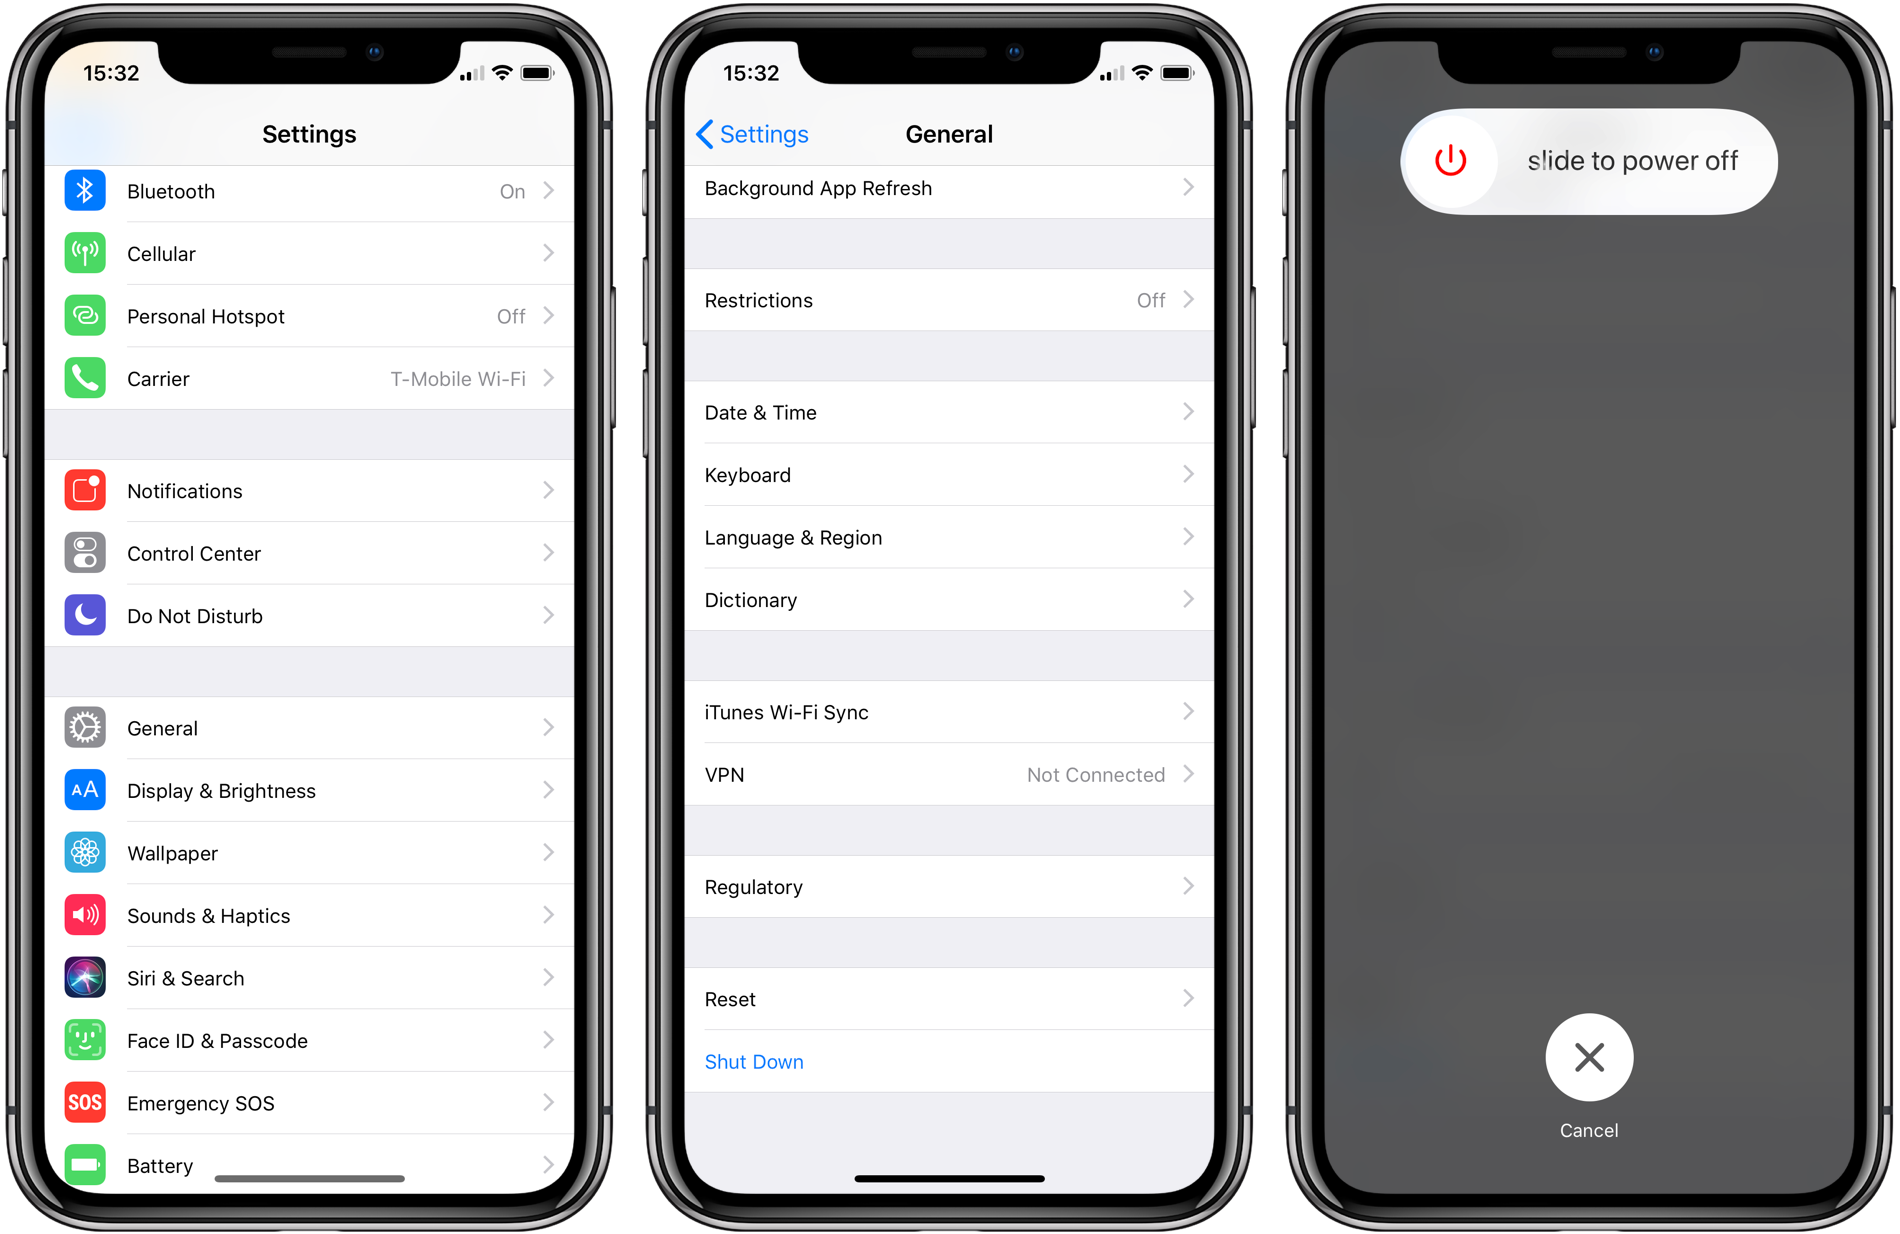 "<span href=""https://9to5mac.com/2018/05/30/how-to-turn-off-iphone-x/"">Cómo desactivar iPhone X</a>"